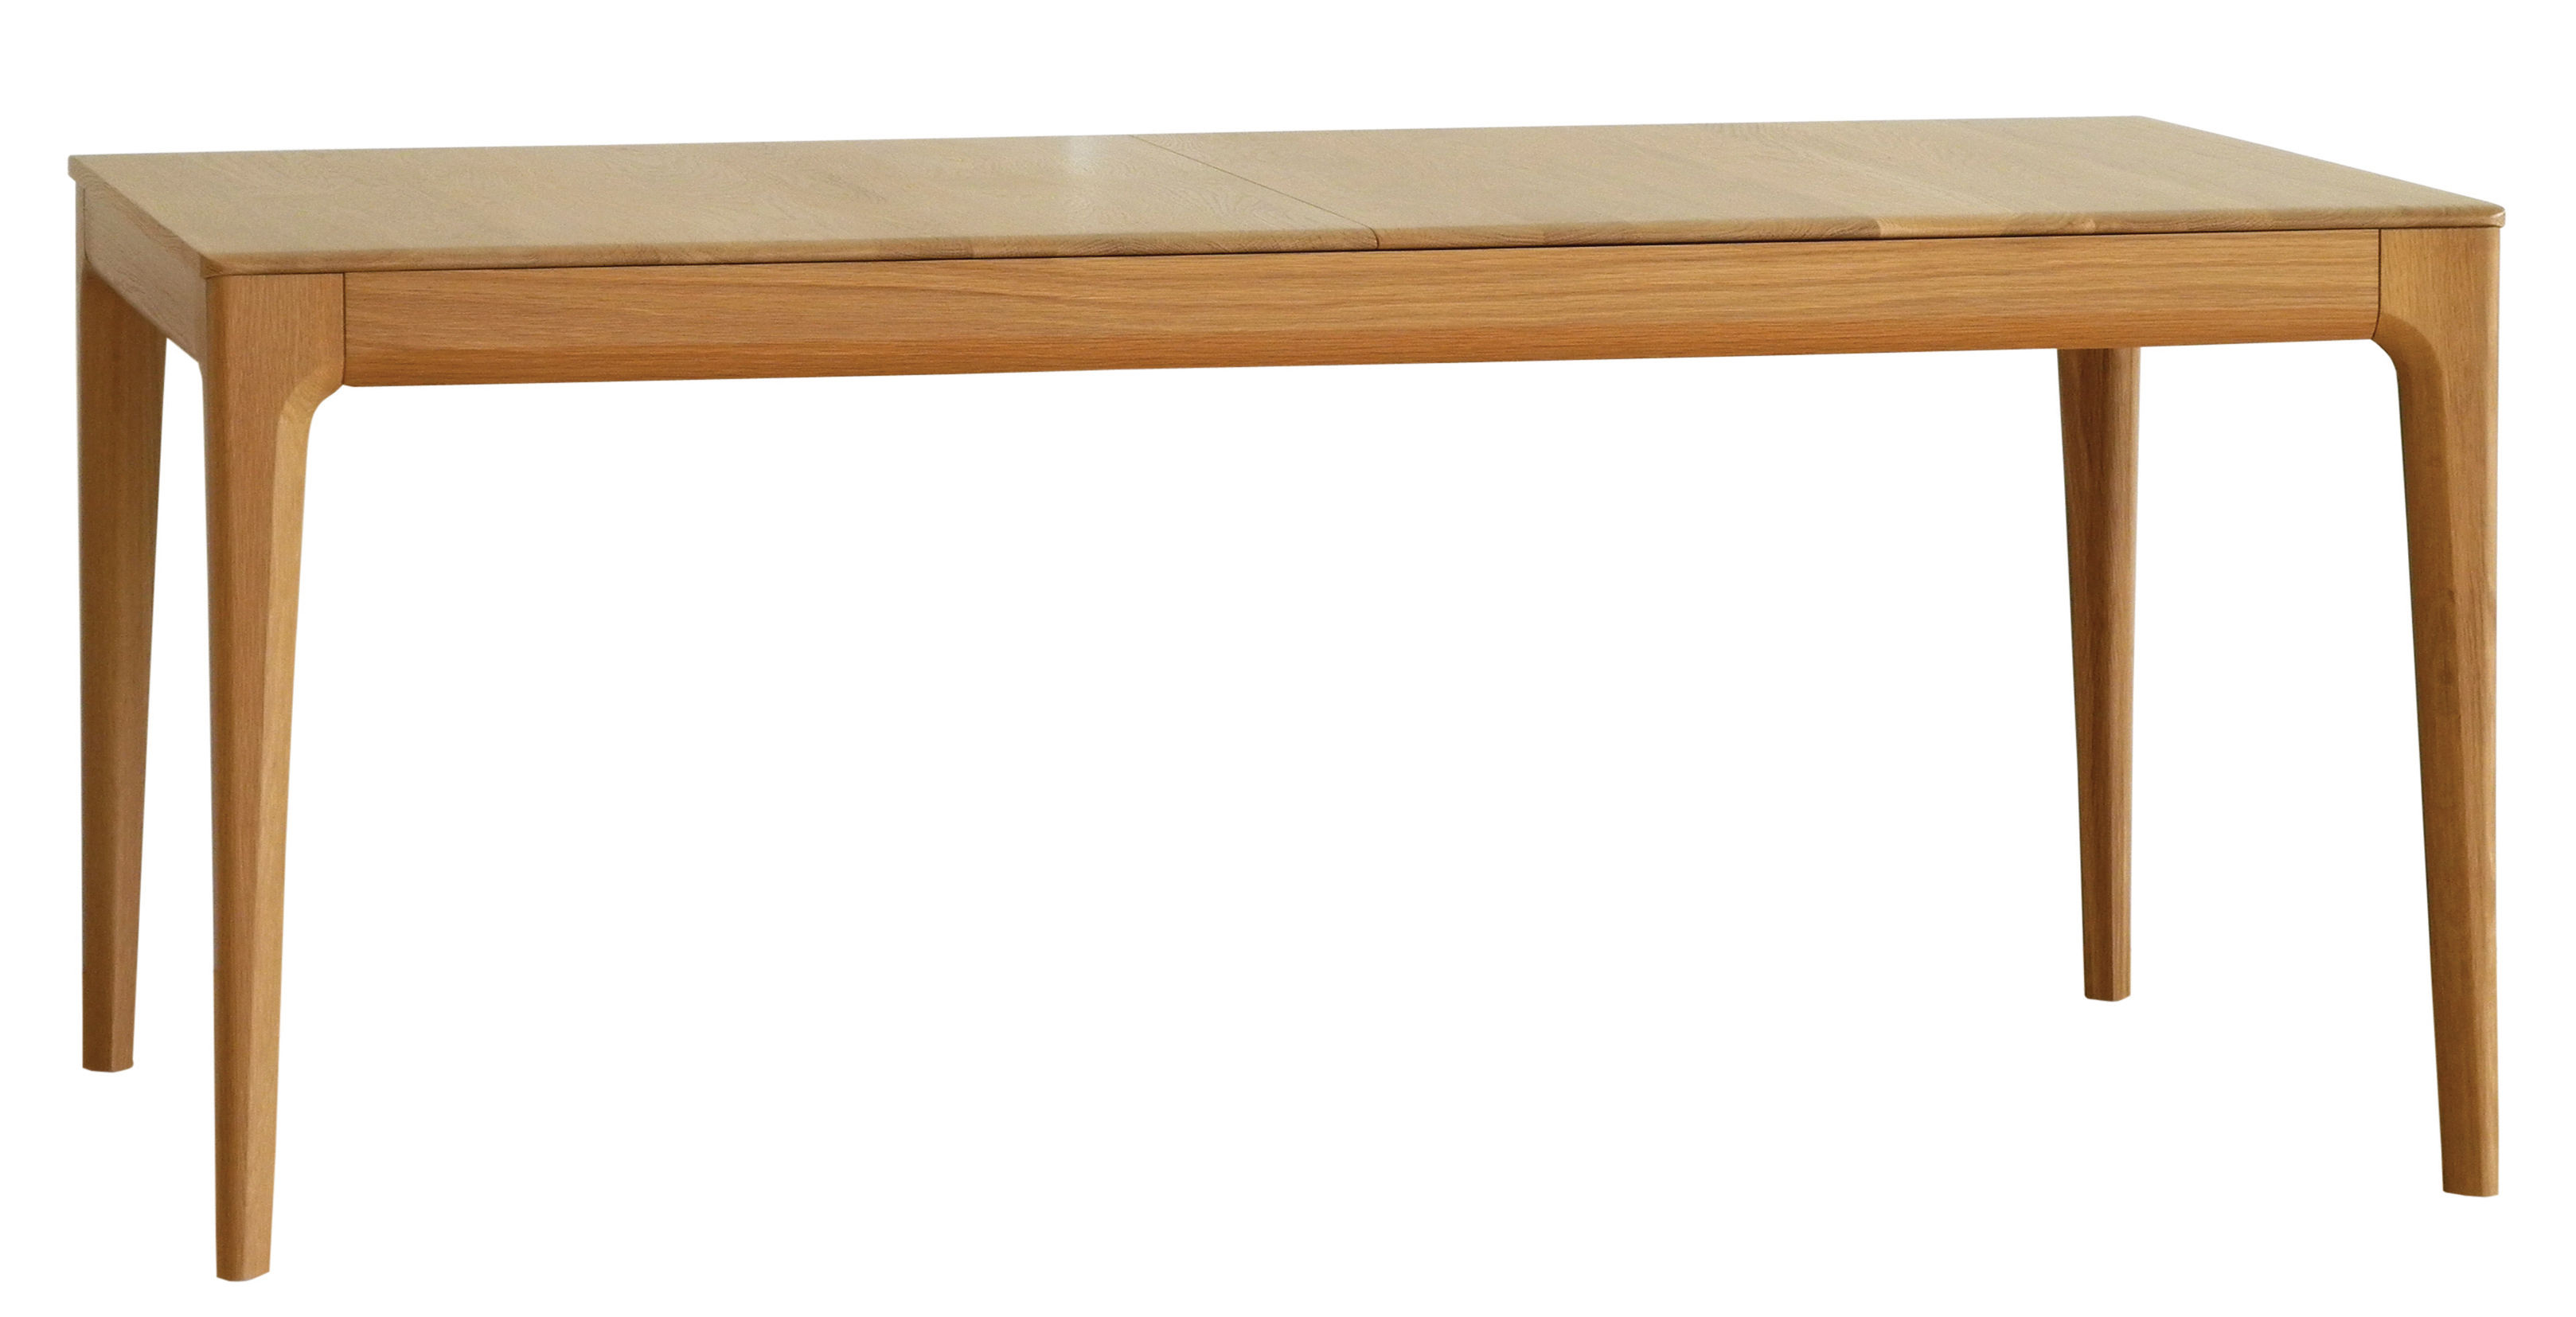 Table rallonge romana l 210 275 cm 8 10 for Table ronde rallonge 8 a 10 personnes